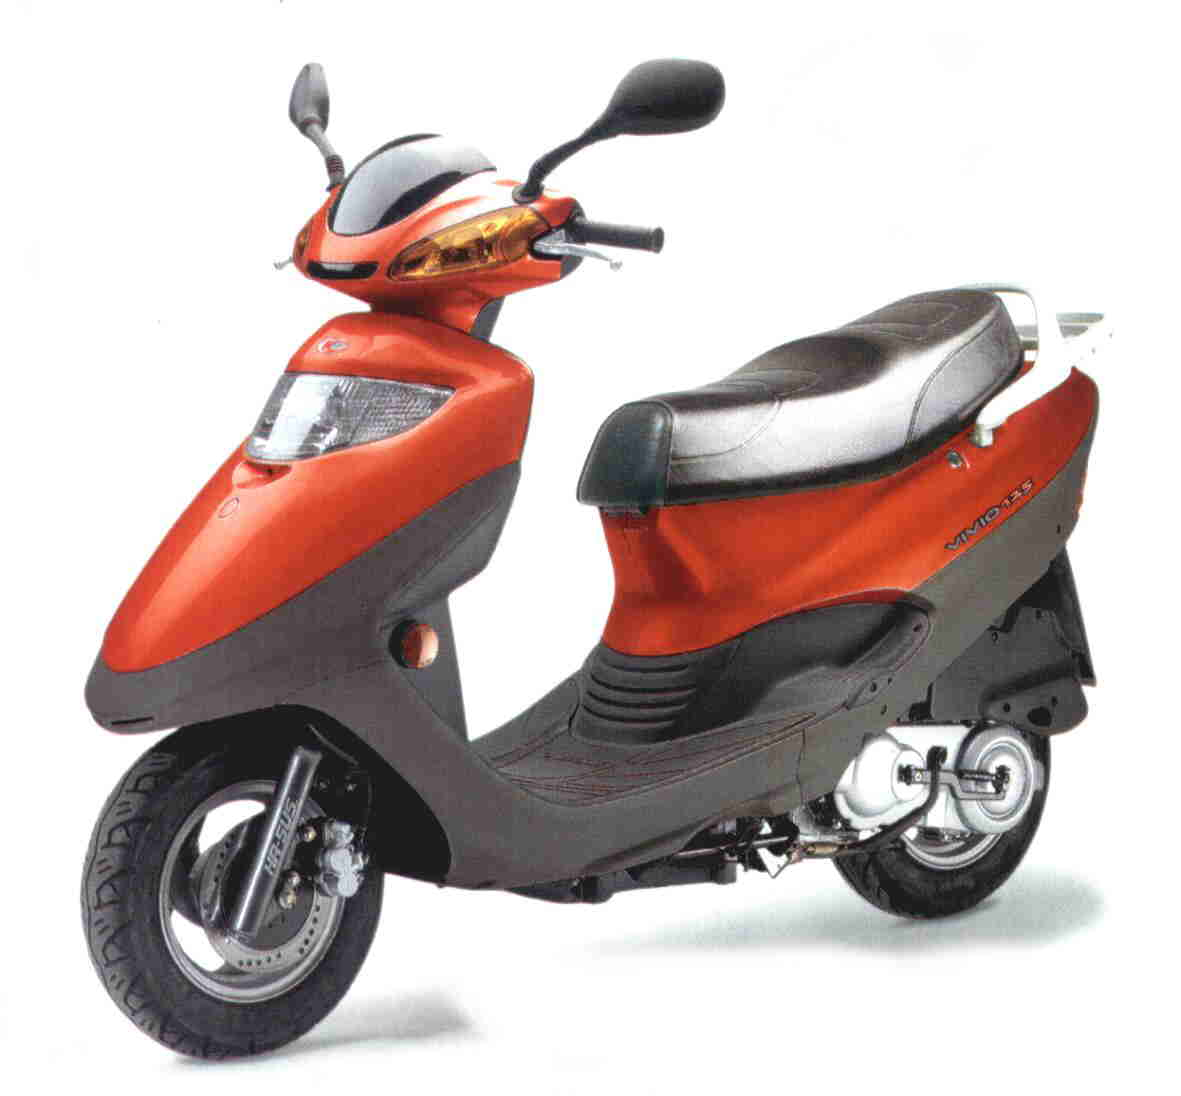 Kymco Heroism 150 1995 images #100791